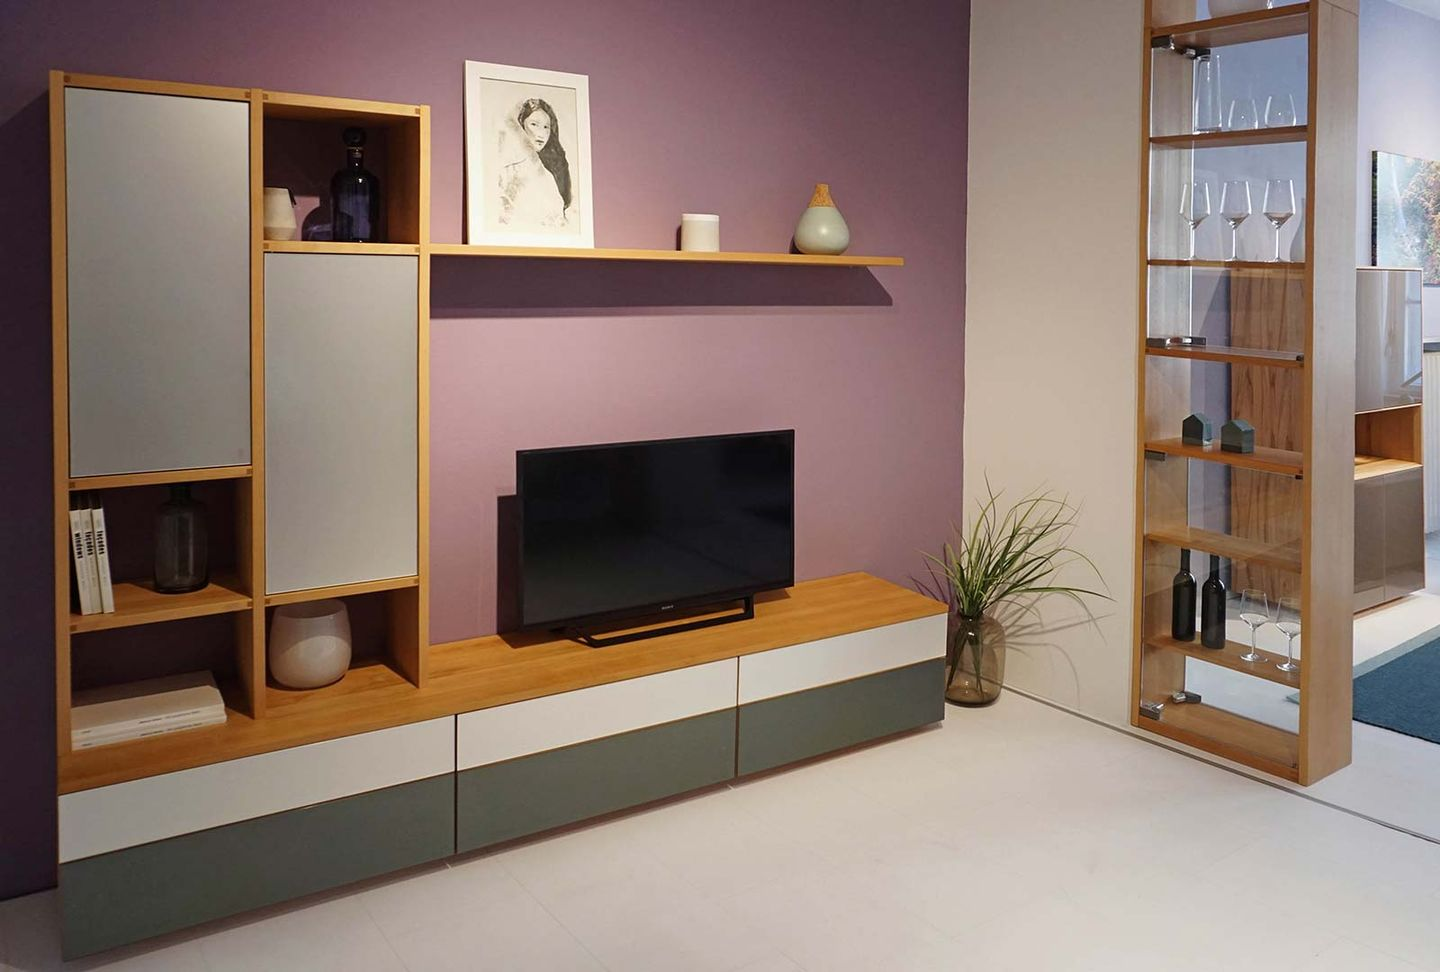 cubus wall unit TEAM 7 Munich